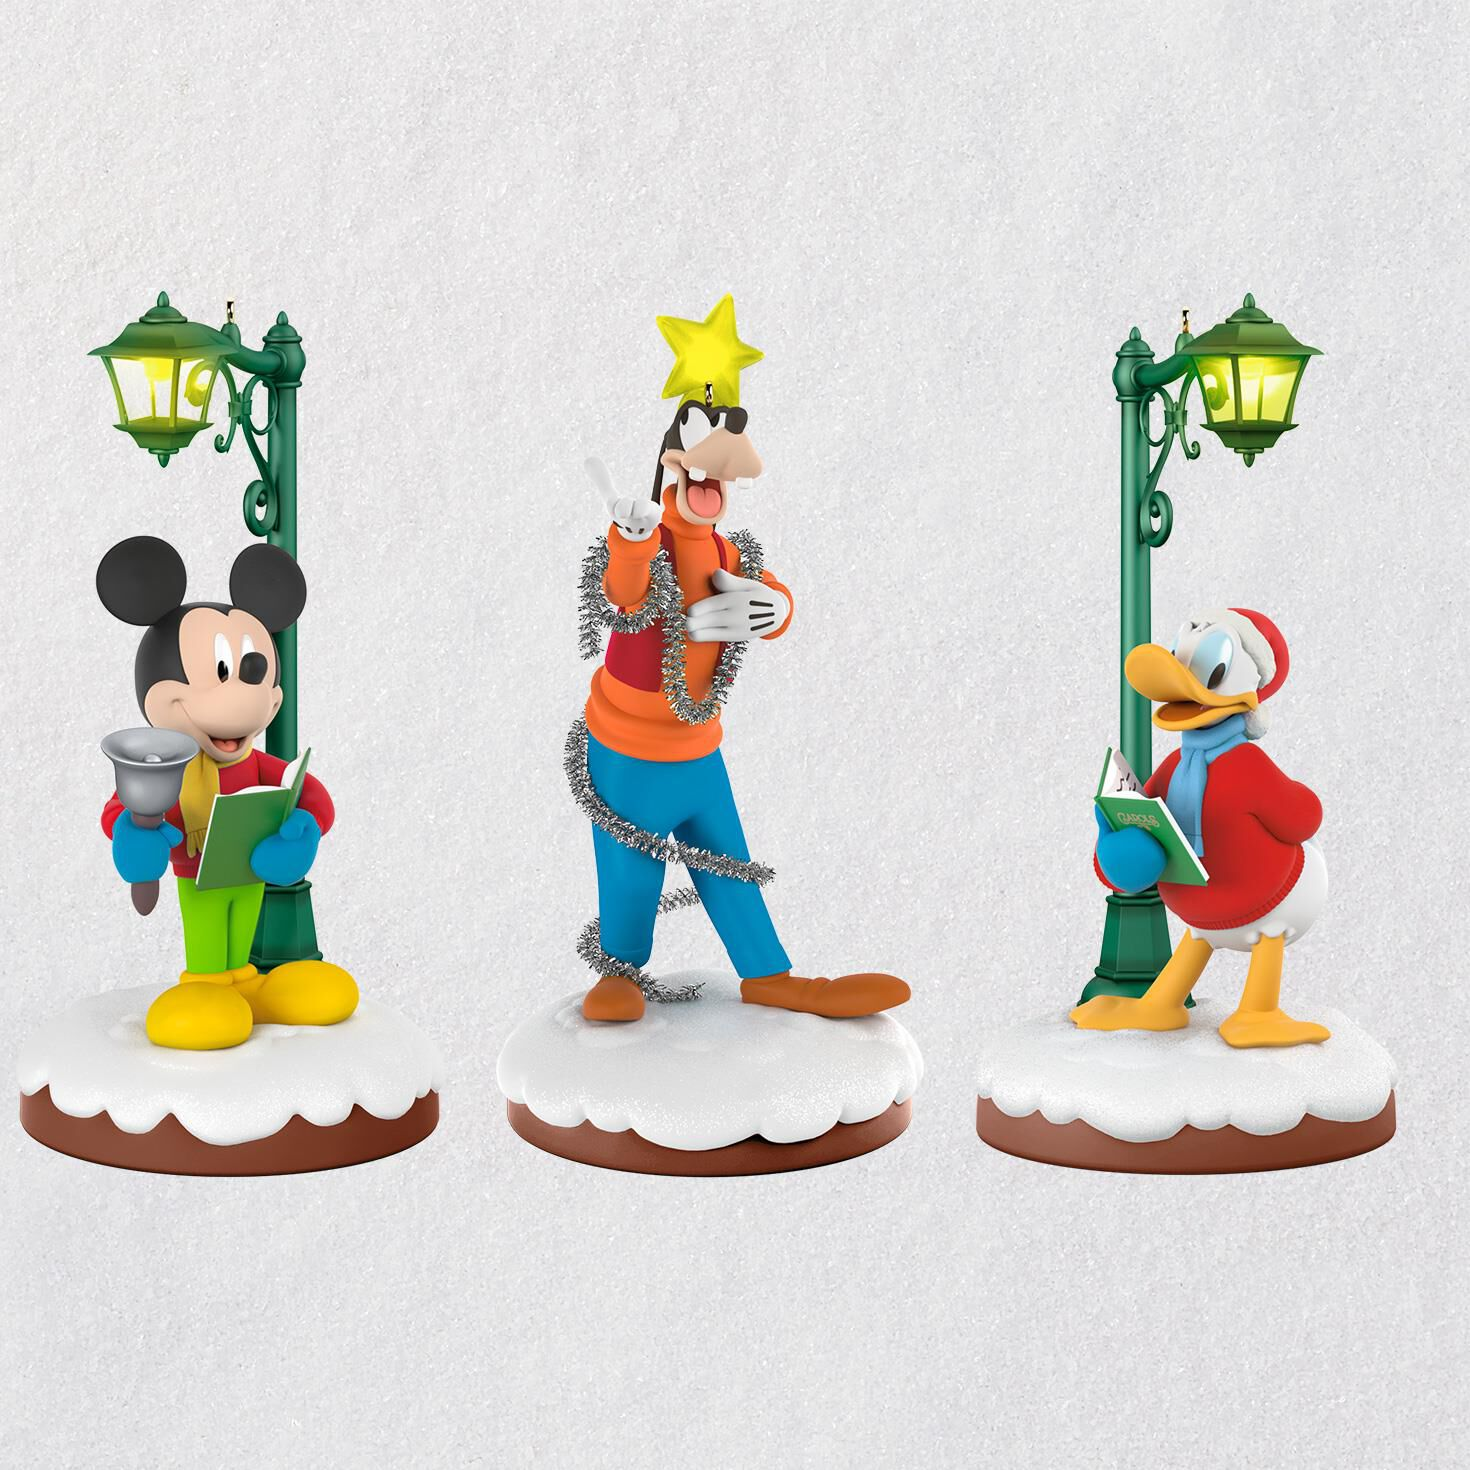 disney christmas carolers limited edition storytellers ornaments set of 3 keepsake ornaments hallmark